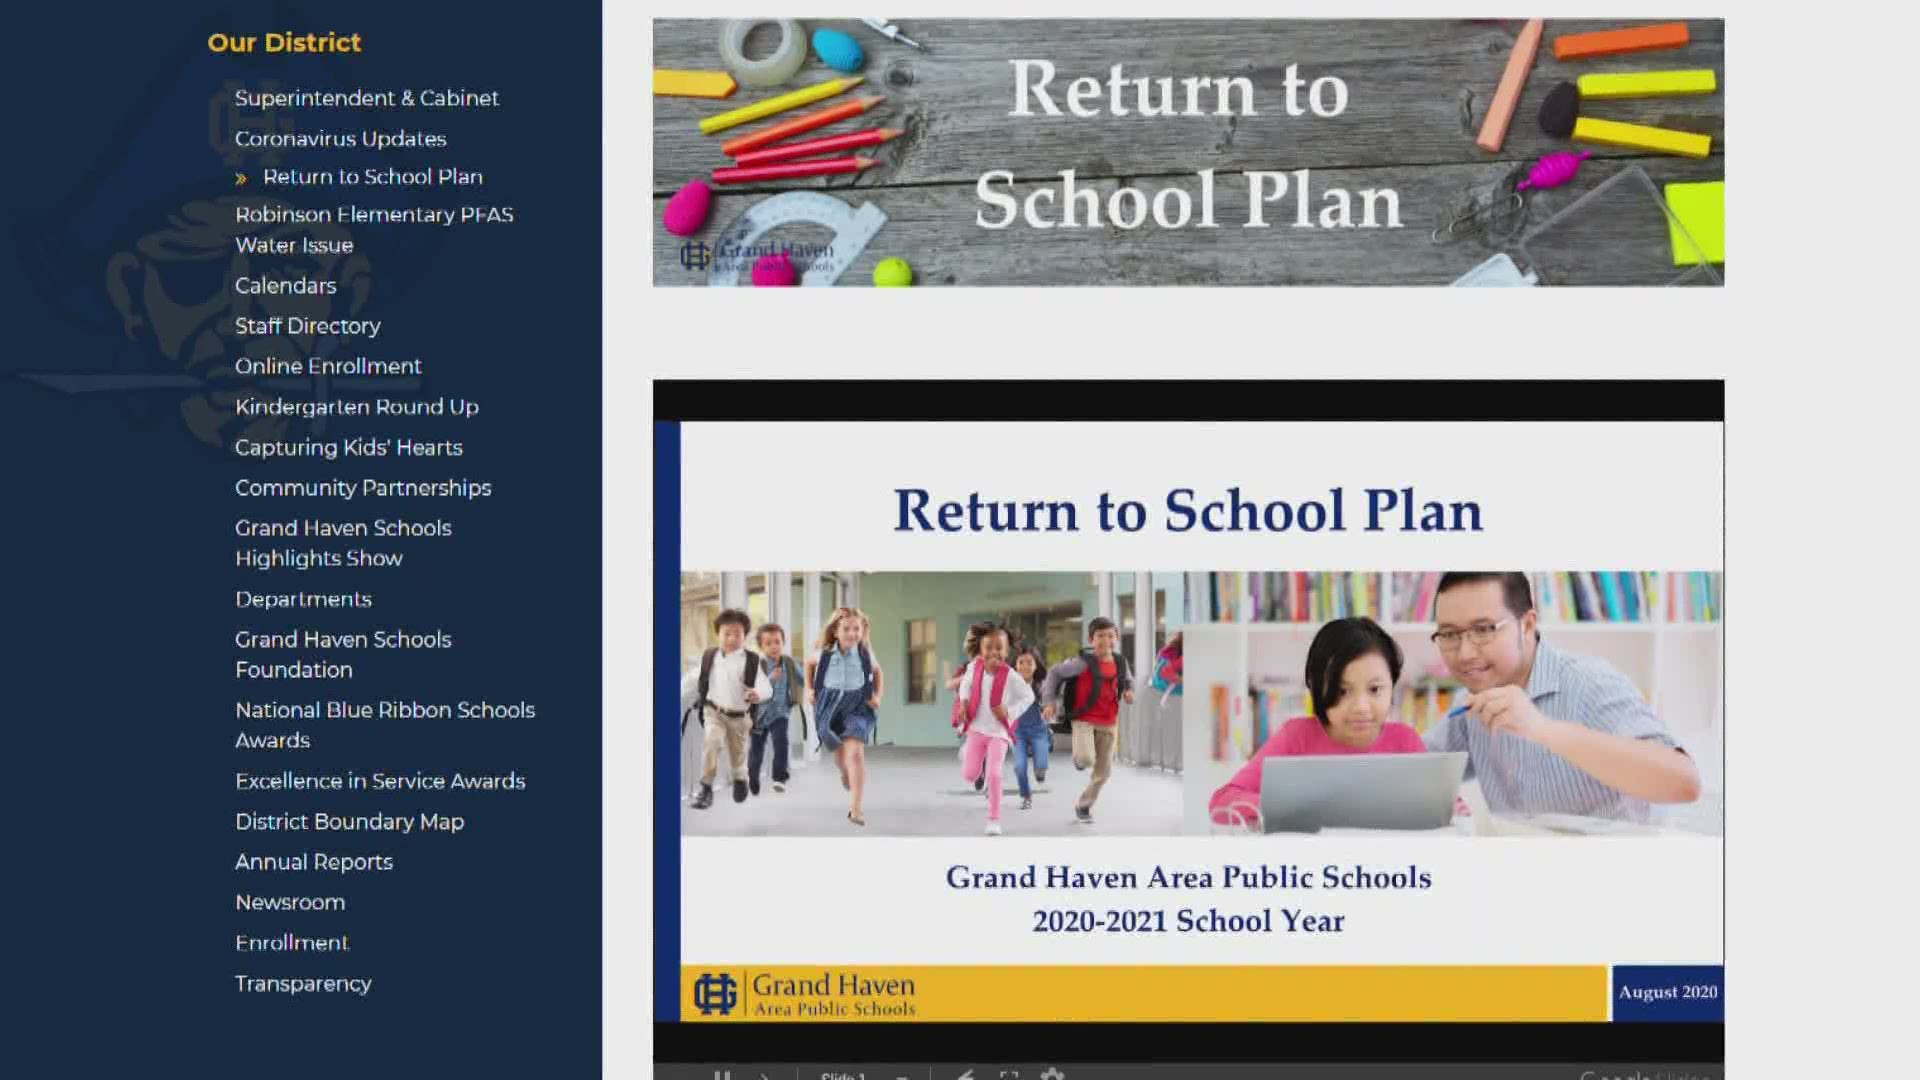 Ghaps Releases Back To School Plan With Spring Break For Grand Rapids Public Schools